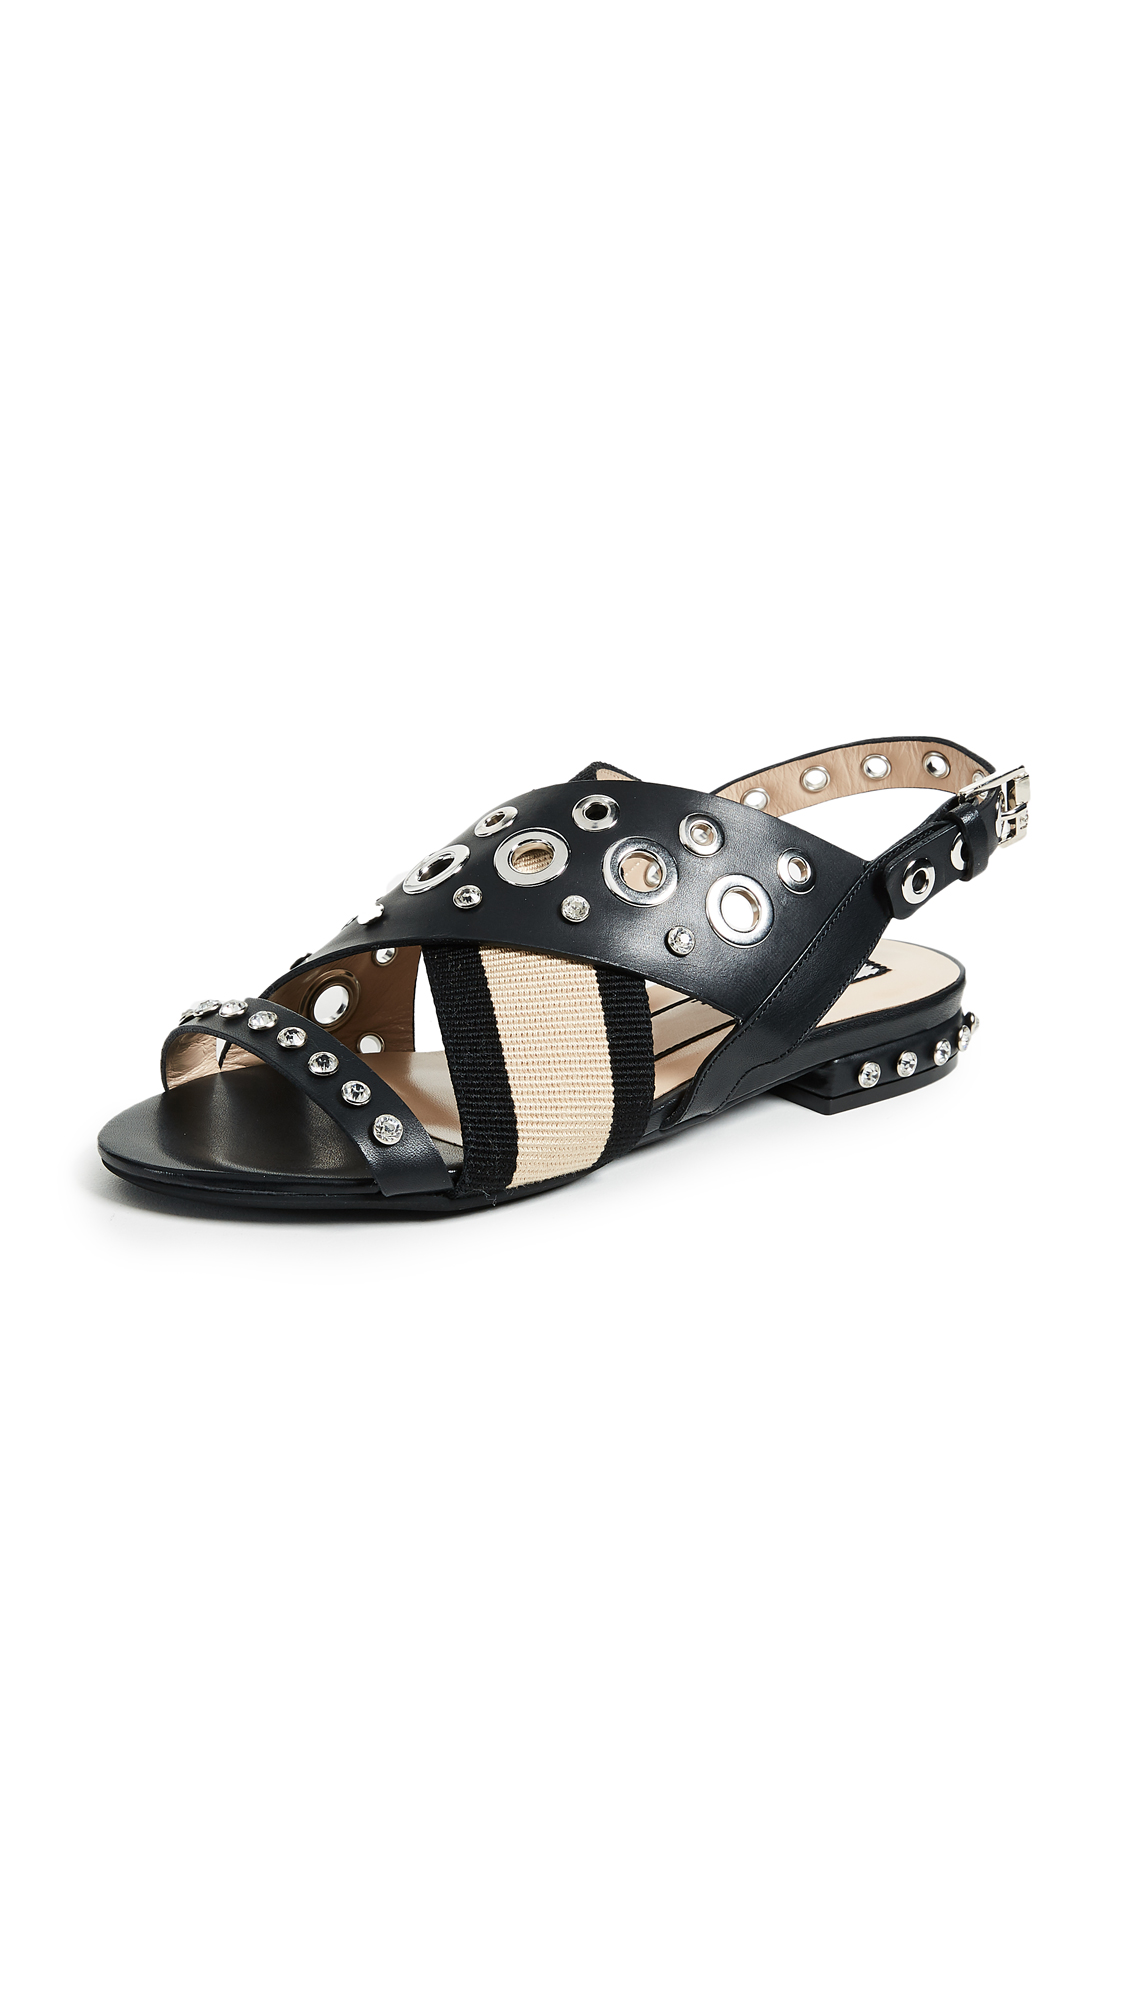 No. 21 Grommet Sandals - Black